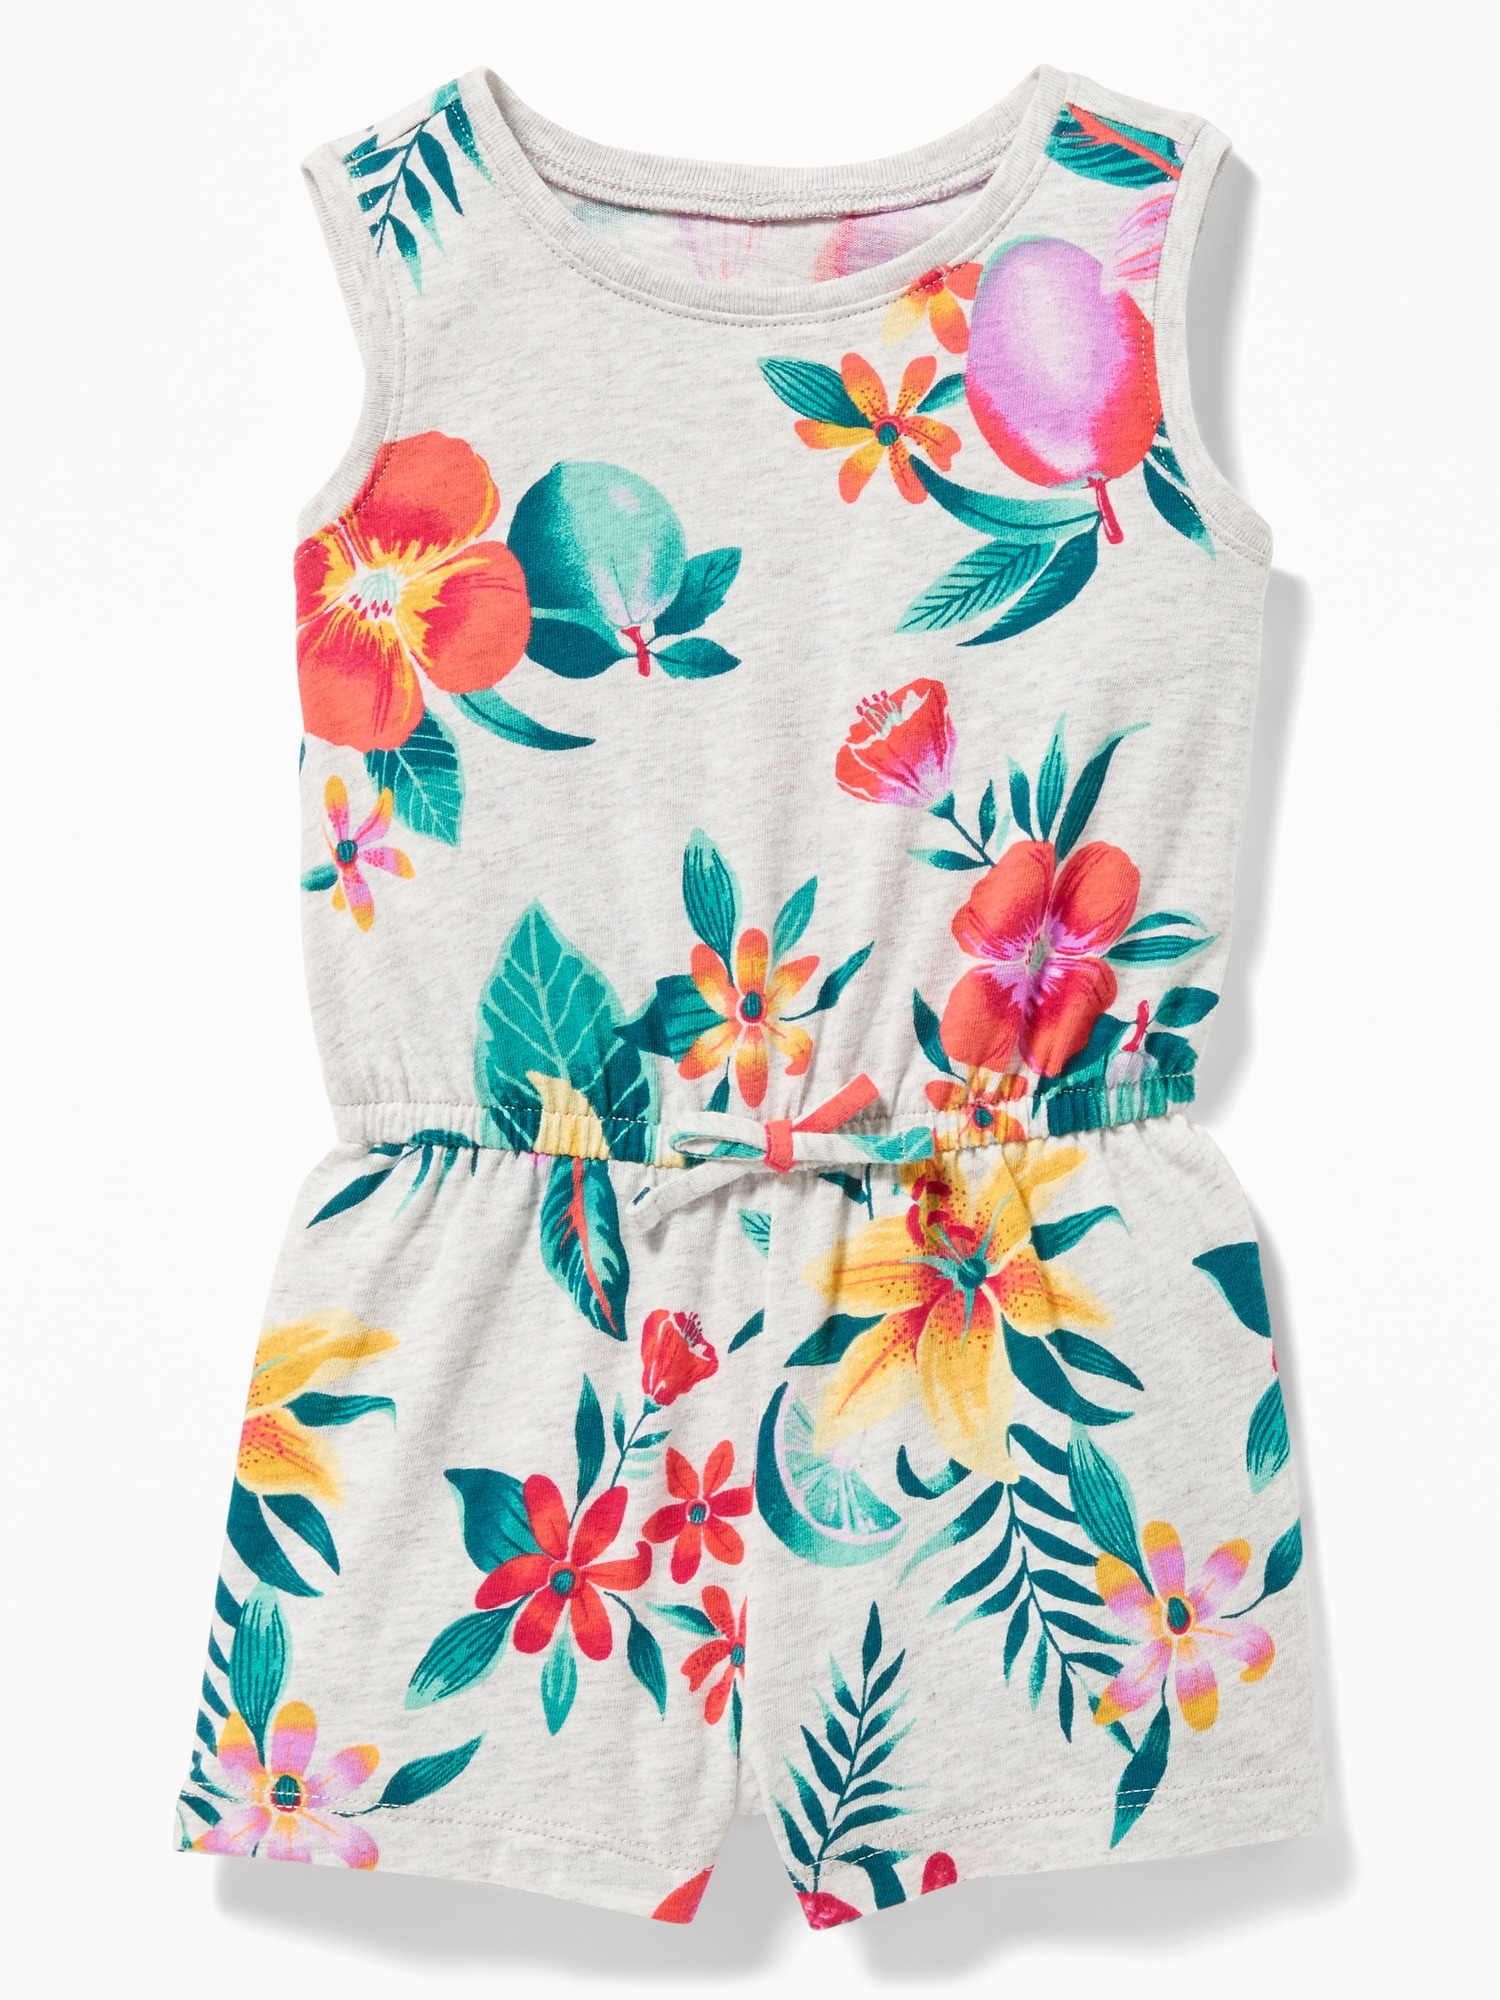 34c7f82fa Printed Jersey Romper for Baby   Old Navy